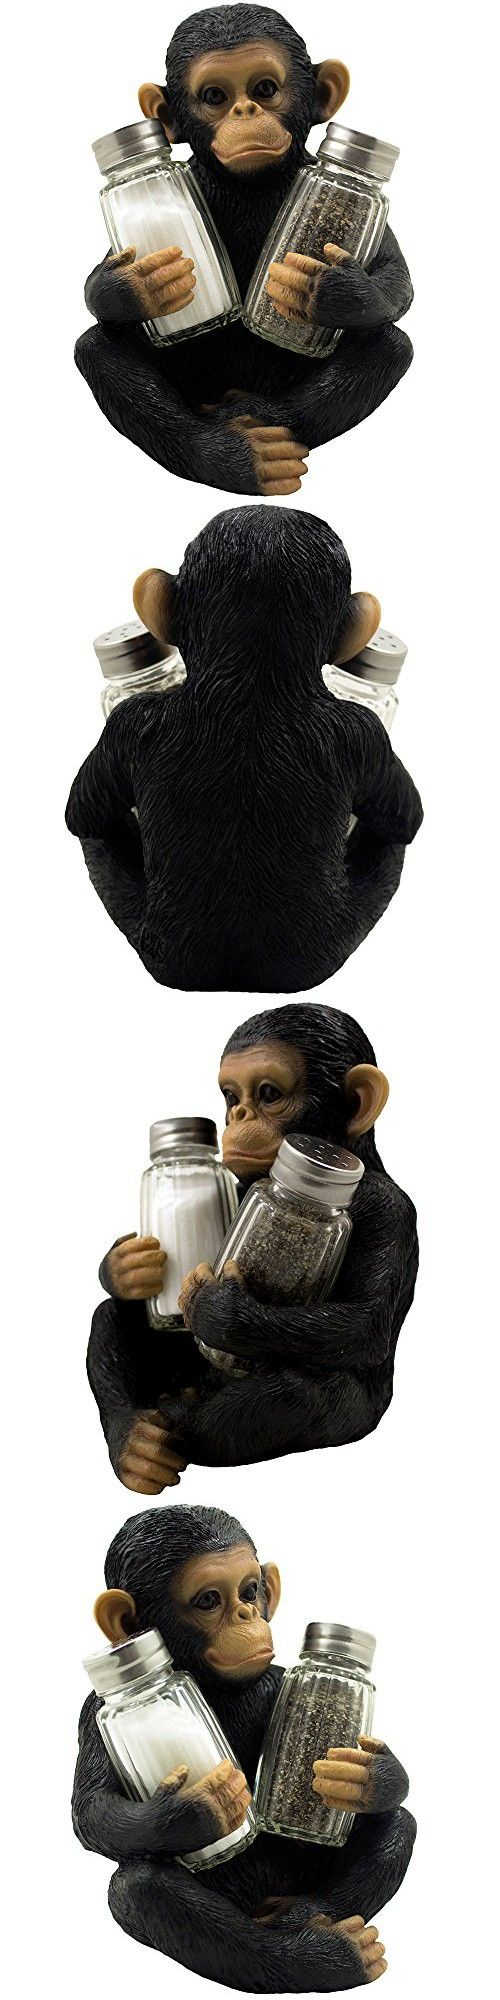 Decorative Monkey Glass Salt and Pepper Shaker Set with Holder Figurine for Tropical & African Jungle Safari Kitchen Table Decor Sculptures or Whimsical Chimp Statues As Gifts for Animal Lovers